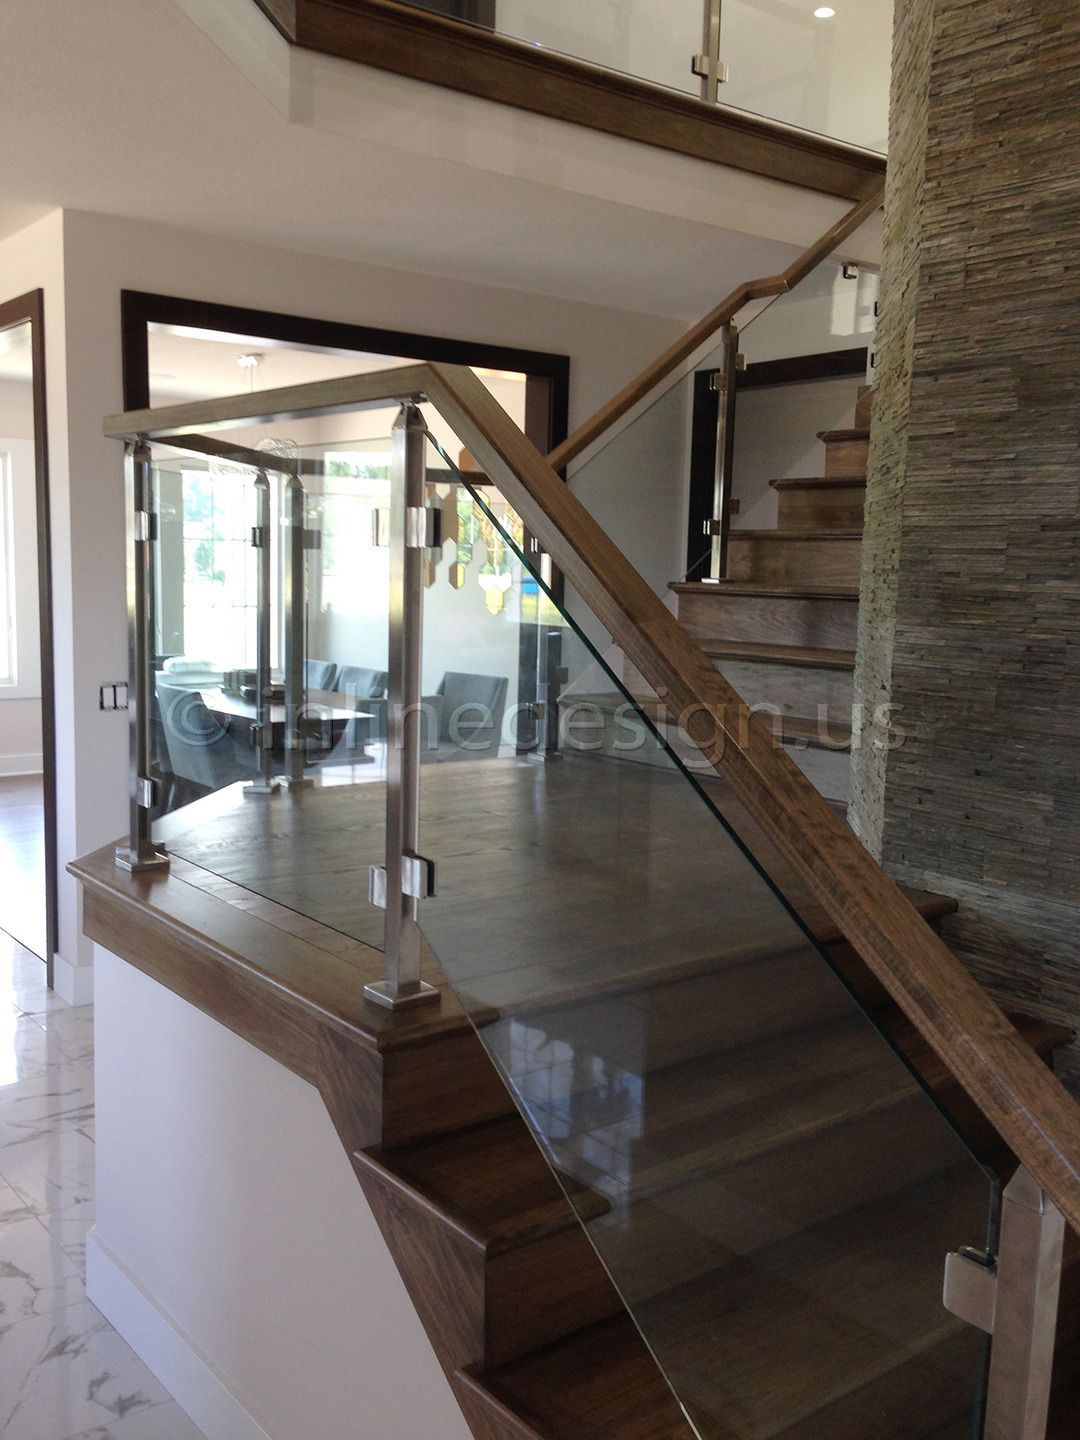 Glass balusters for railings single stainless steel for Interior glass railing designs